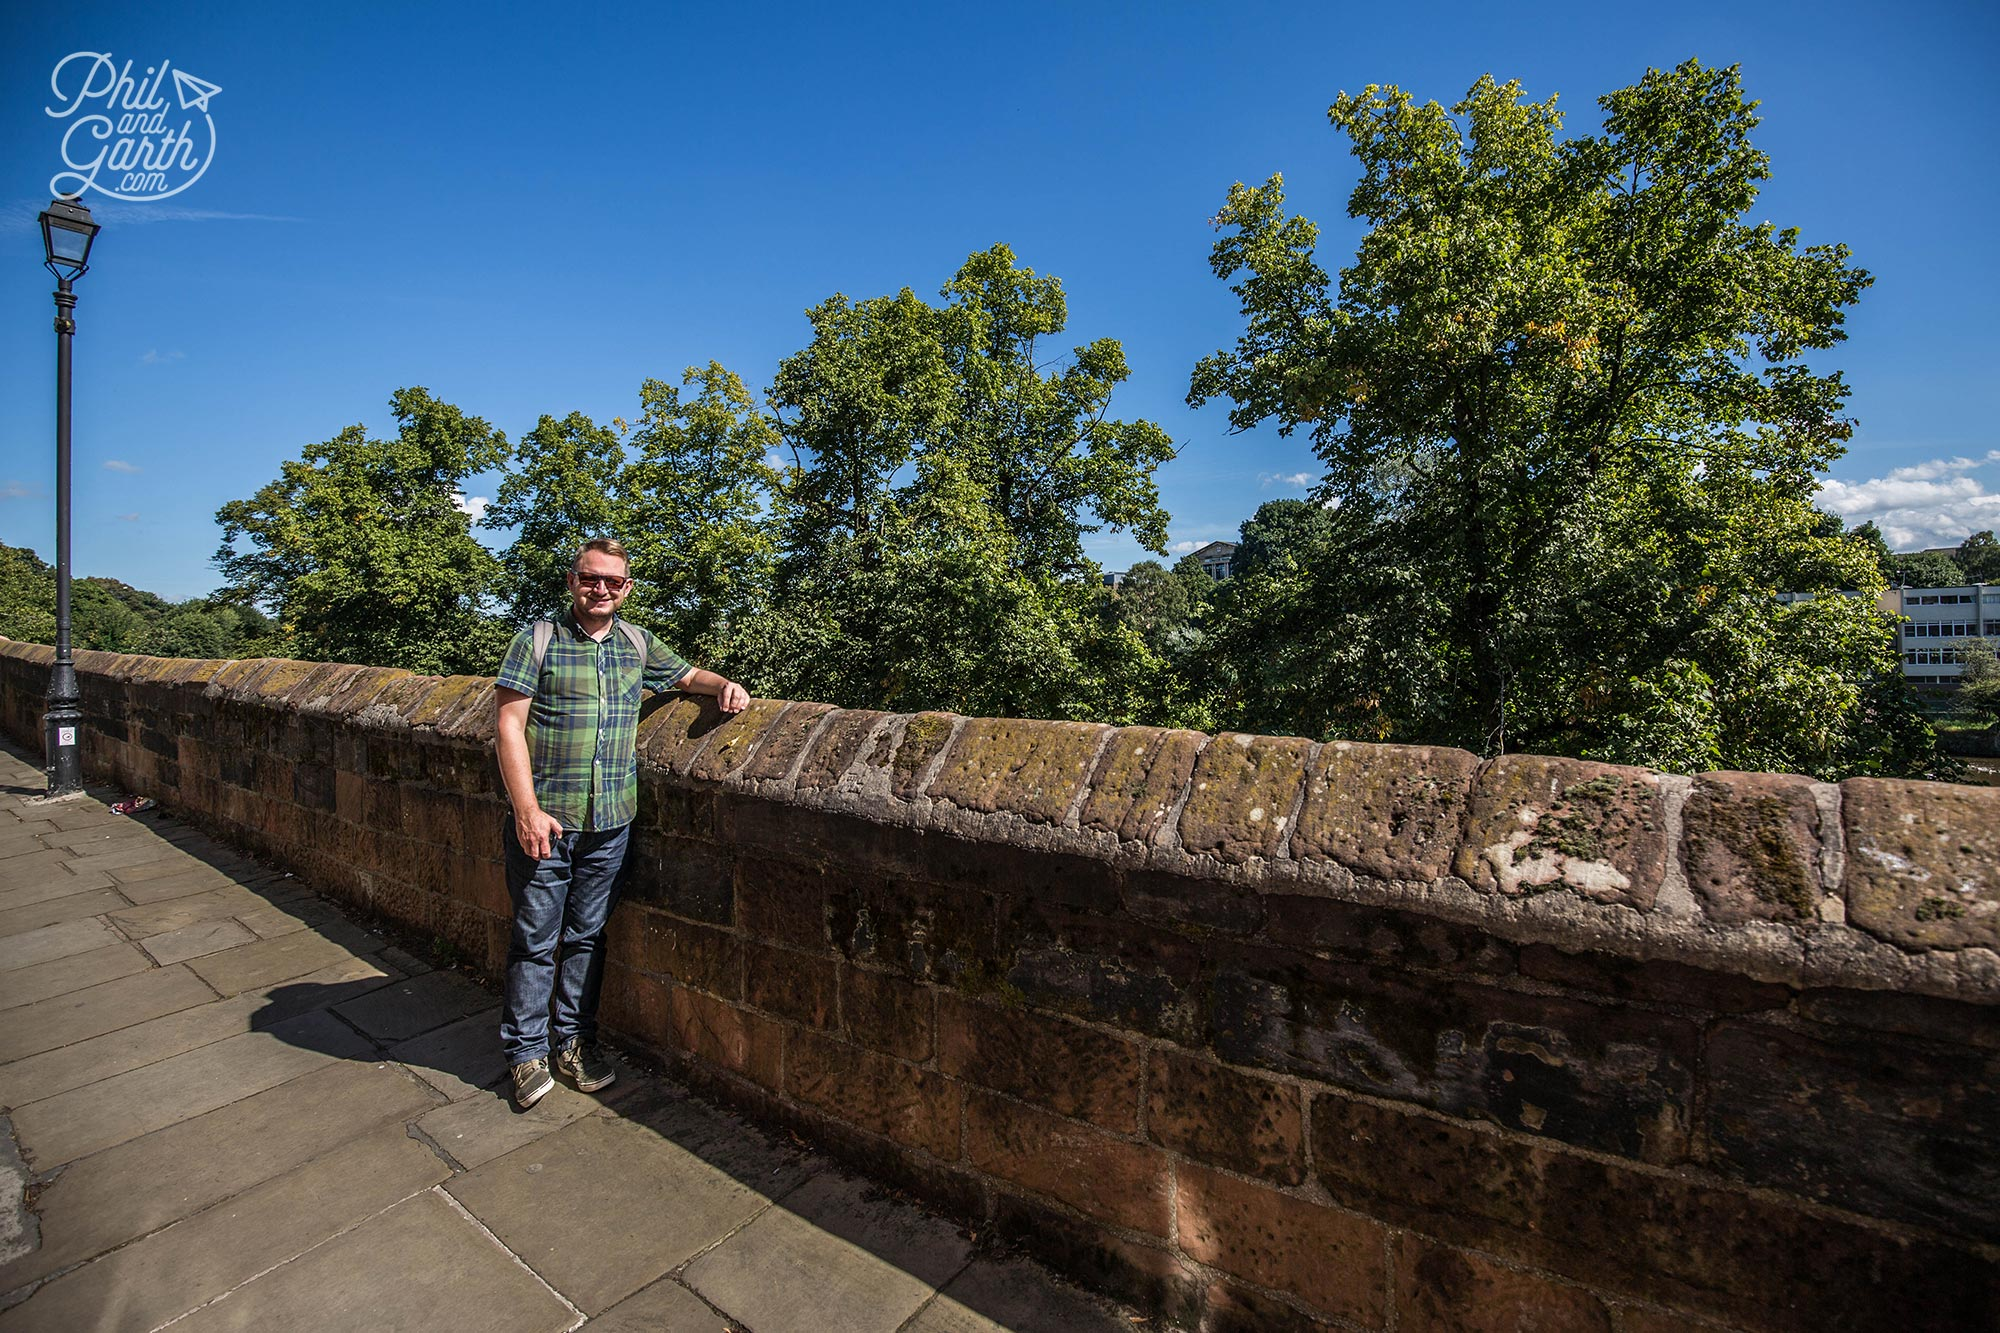 Garth on Chester's city wall near the River Dee